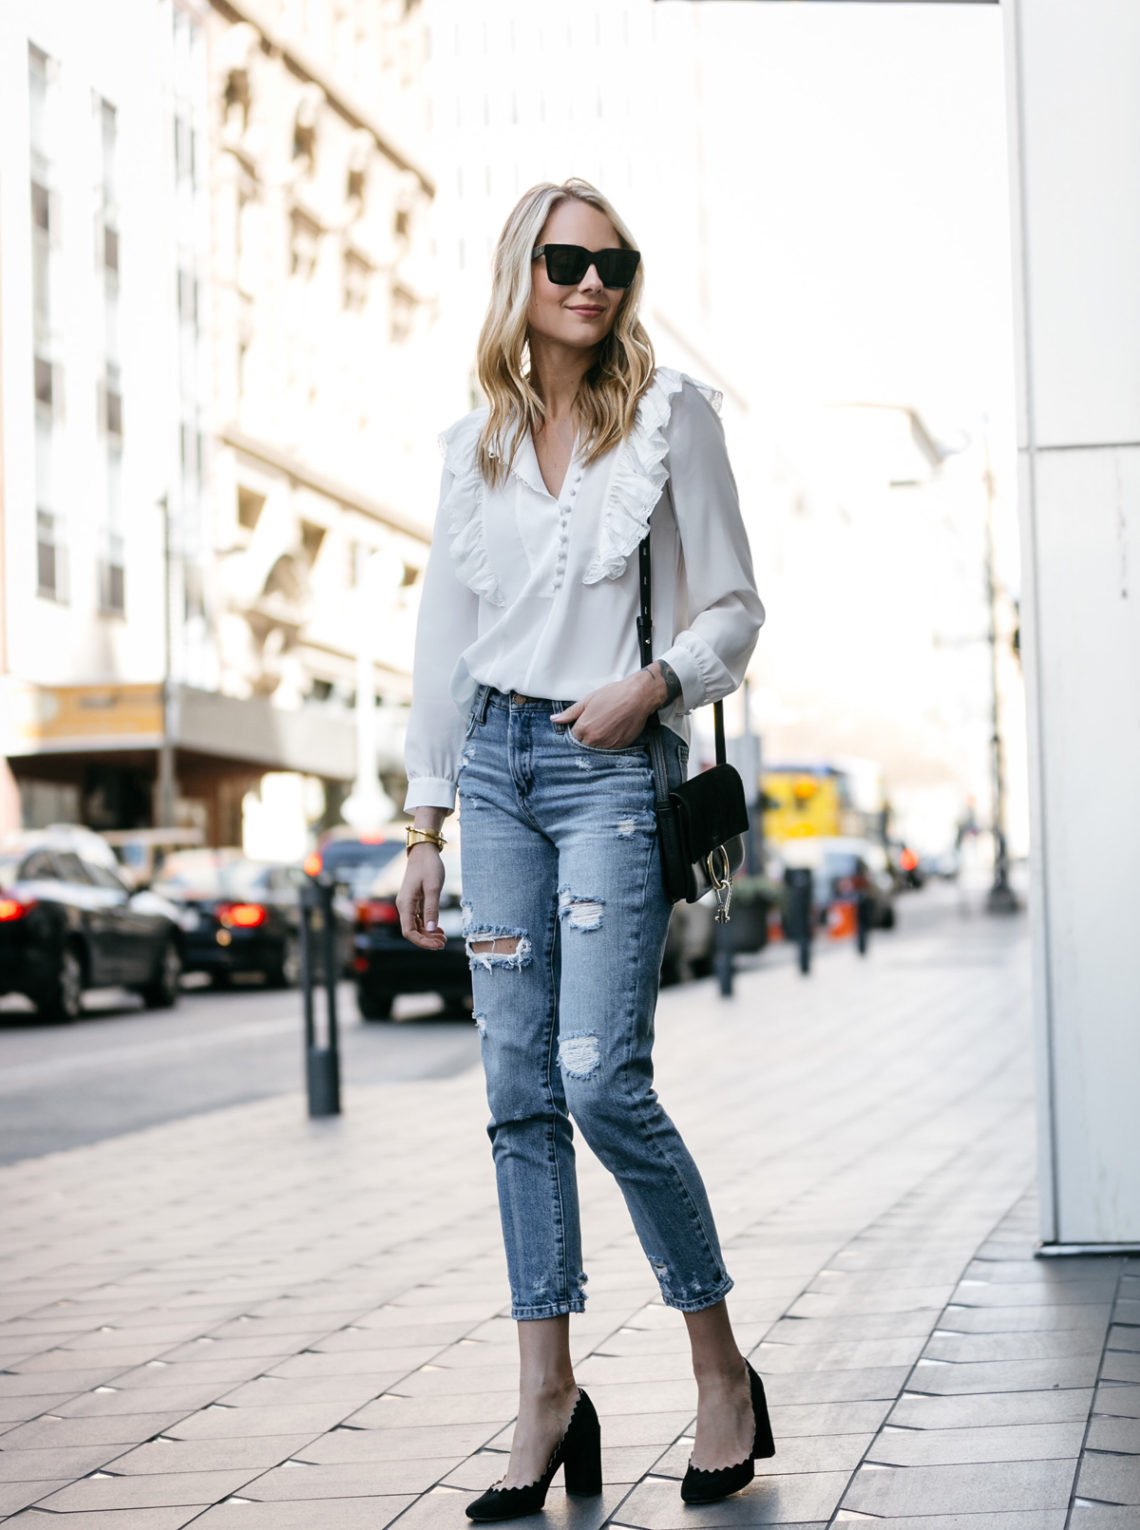 Fashion Jackson, Dallas Blogger, Fashion Blogger, Street Style, Rebecca Taylor White Long Sleeve Silk Ruffle Top, BlankNYC Ripped Denim Mom Jeans, Chloe Lauren Scalloped Pumps, Chloe Faye Handbag